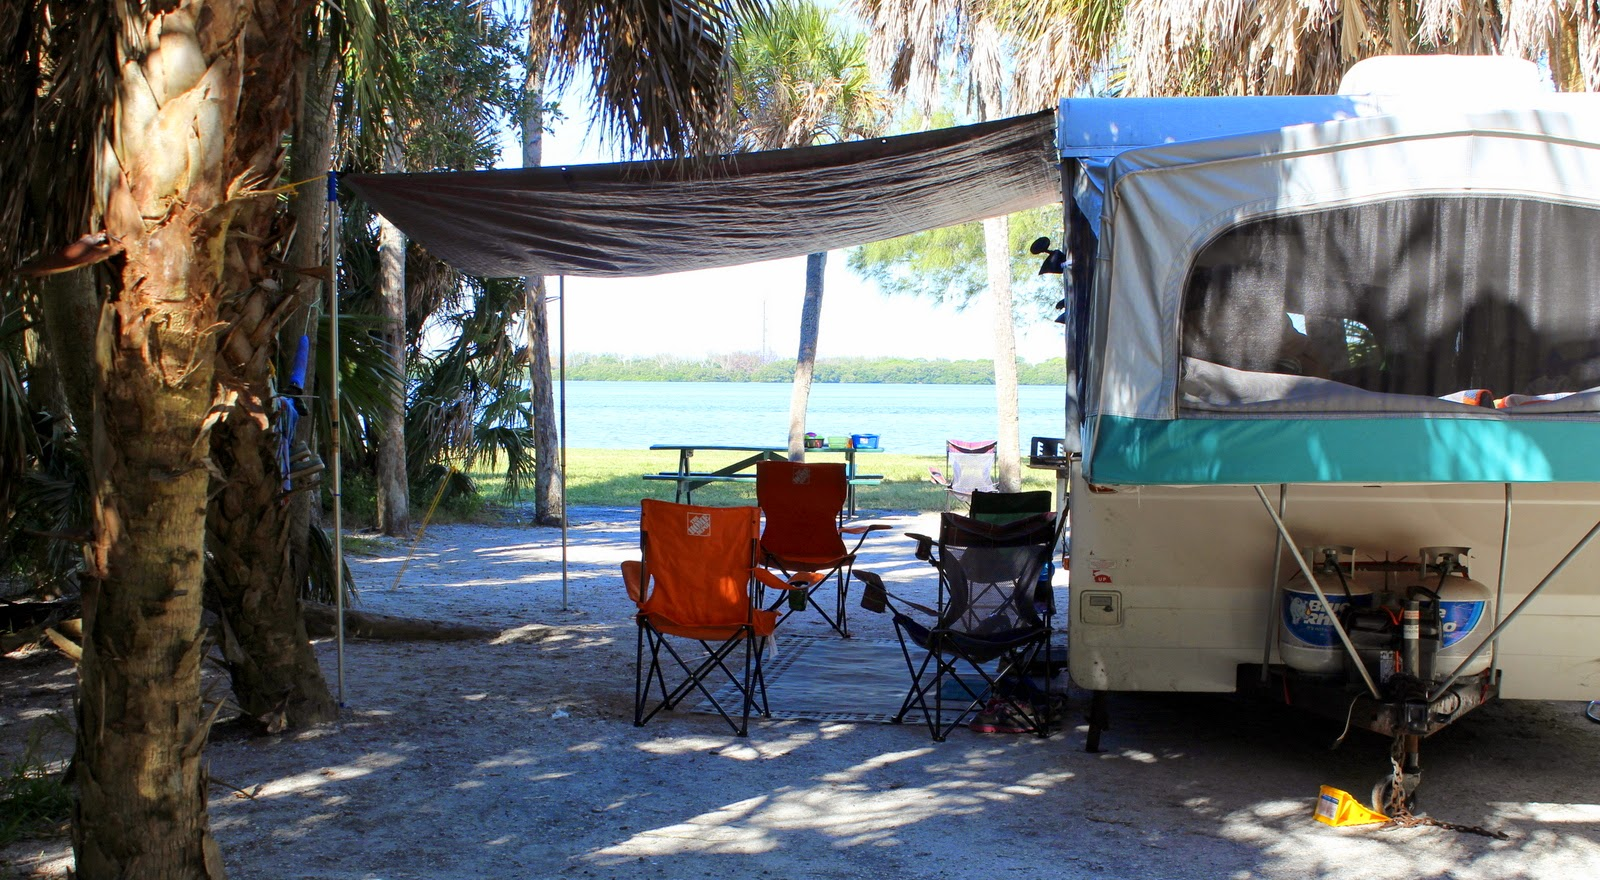 DIY inexpensive Pop Up camper awning